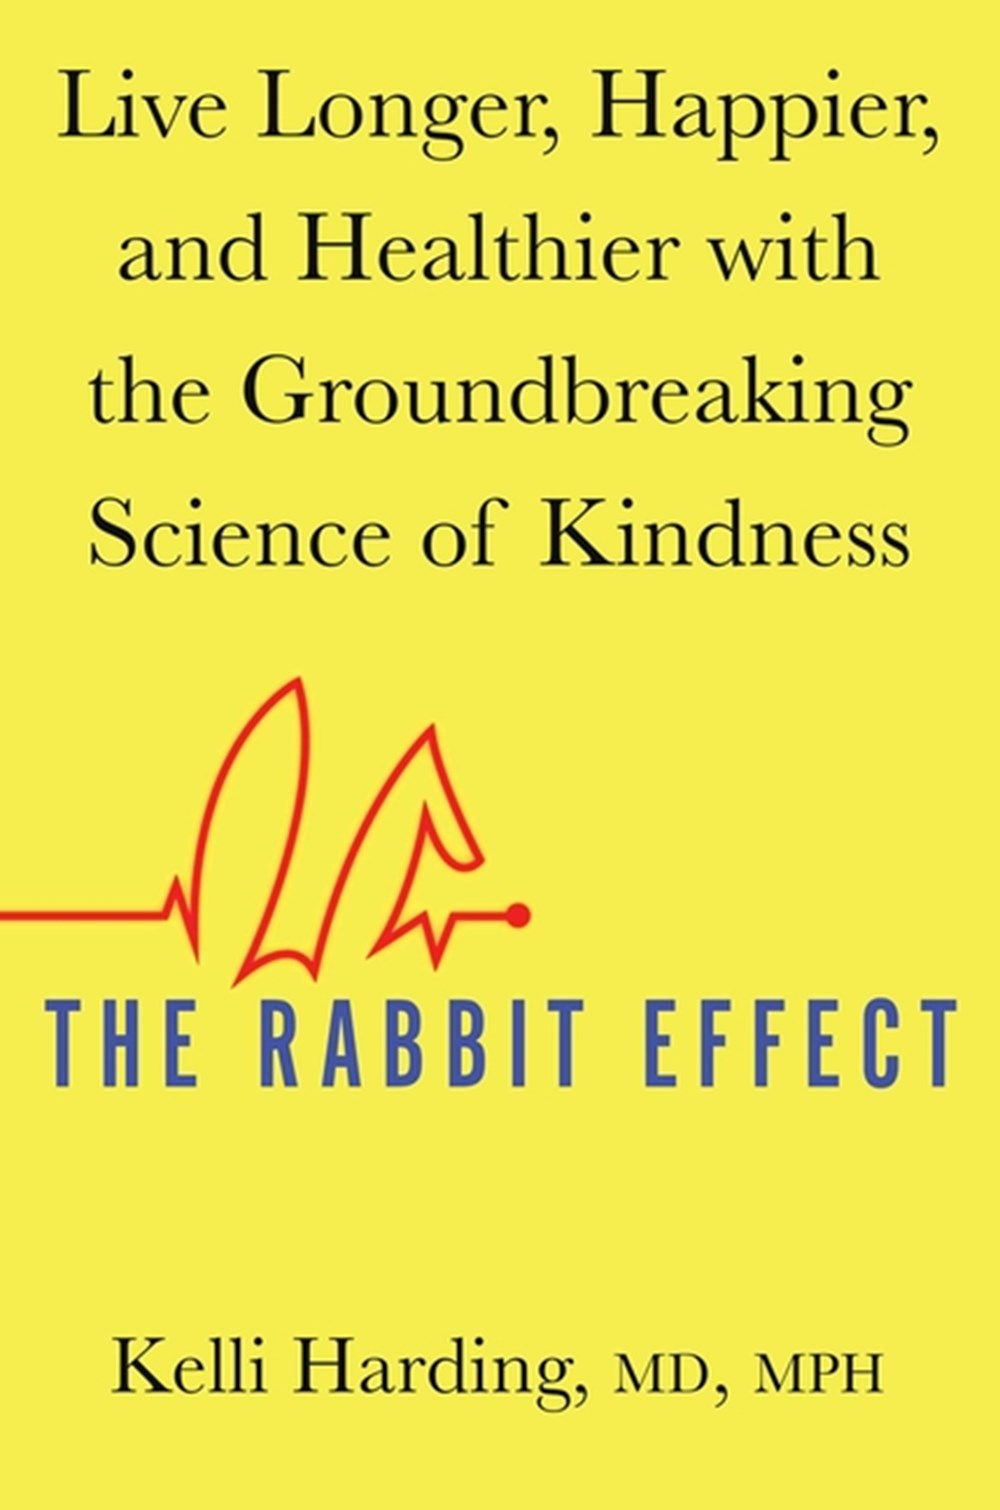 Rabbit Effect Live Longer, Happier, and Healthier with the Groundbreaking Science of Kindness